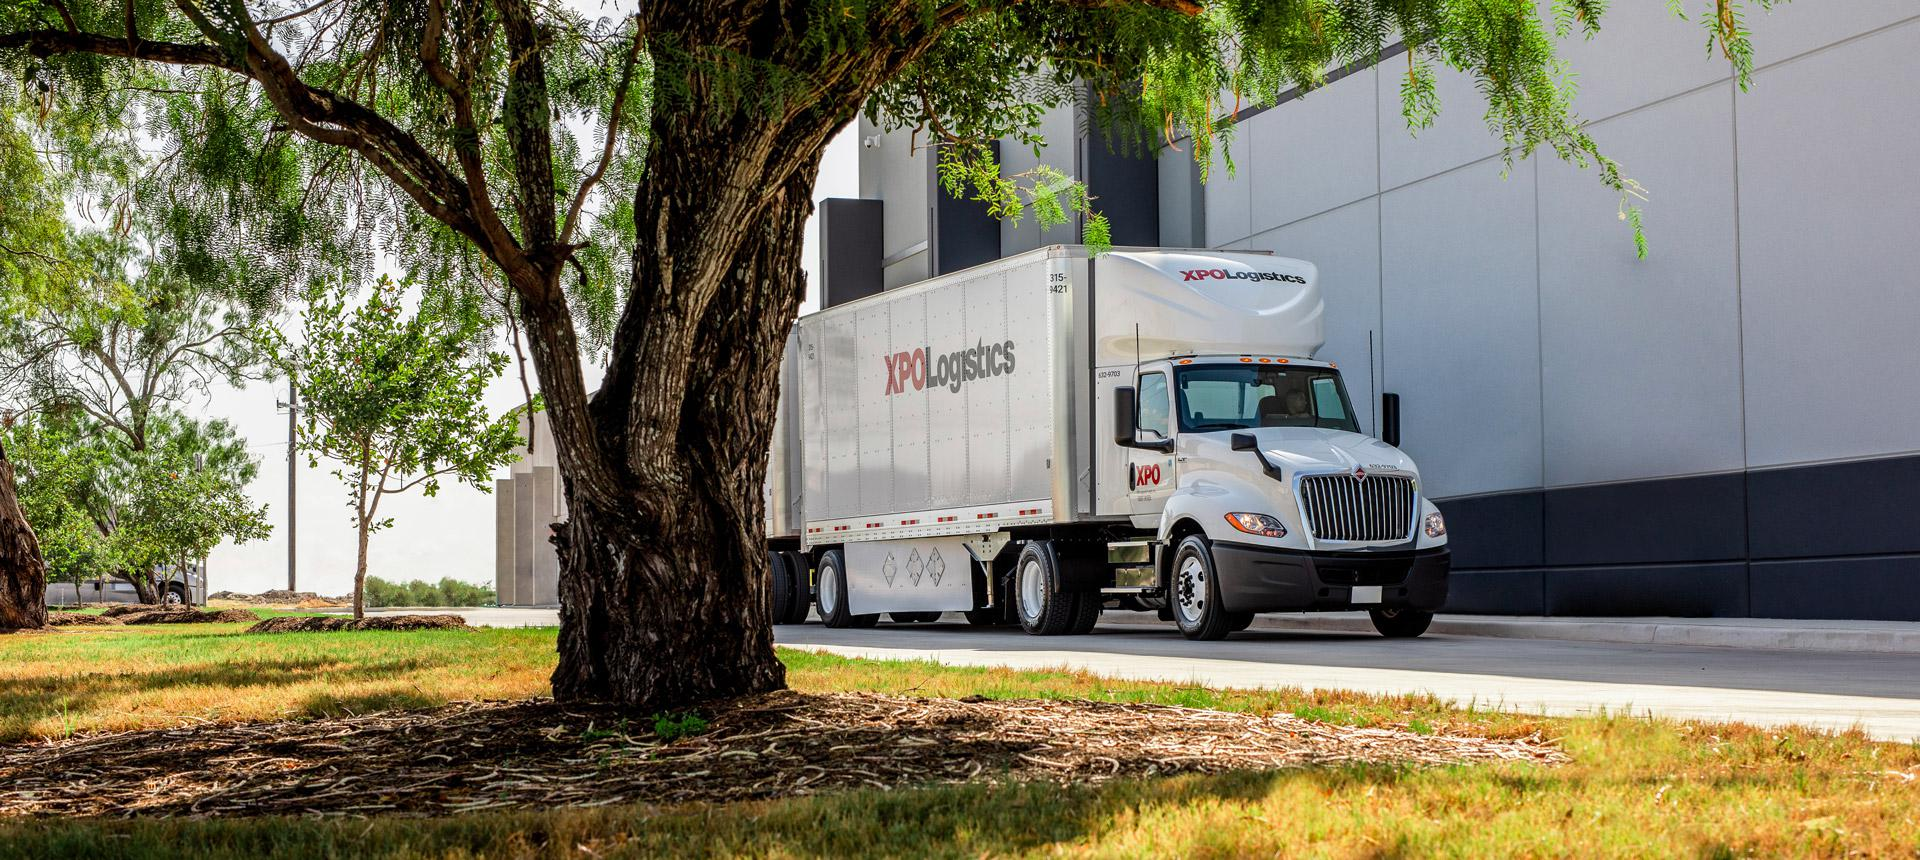 XPO Truck in front of facility